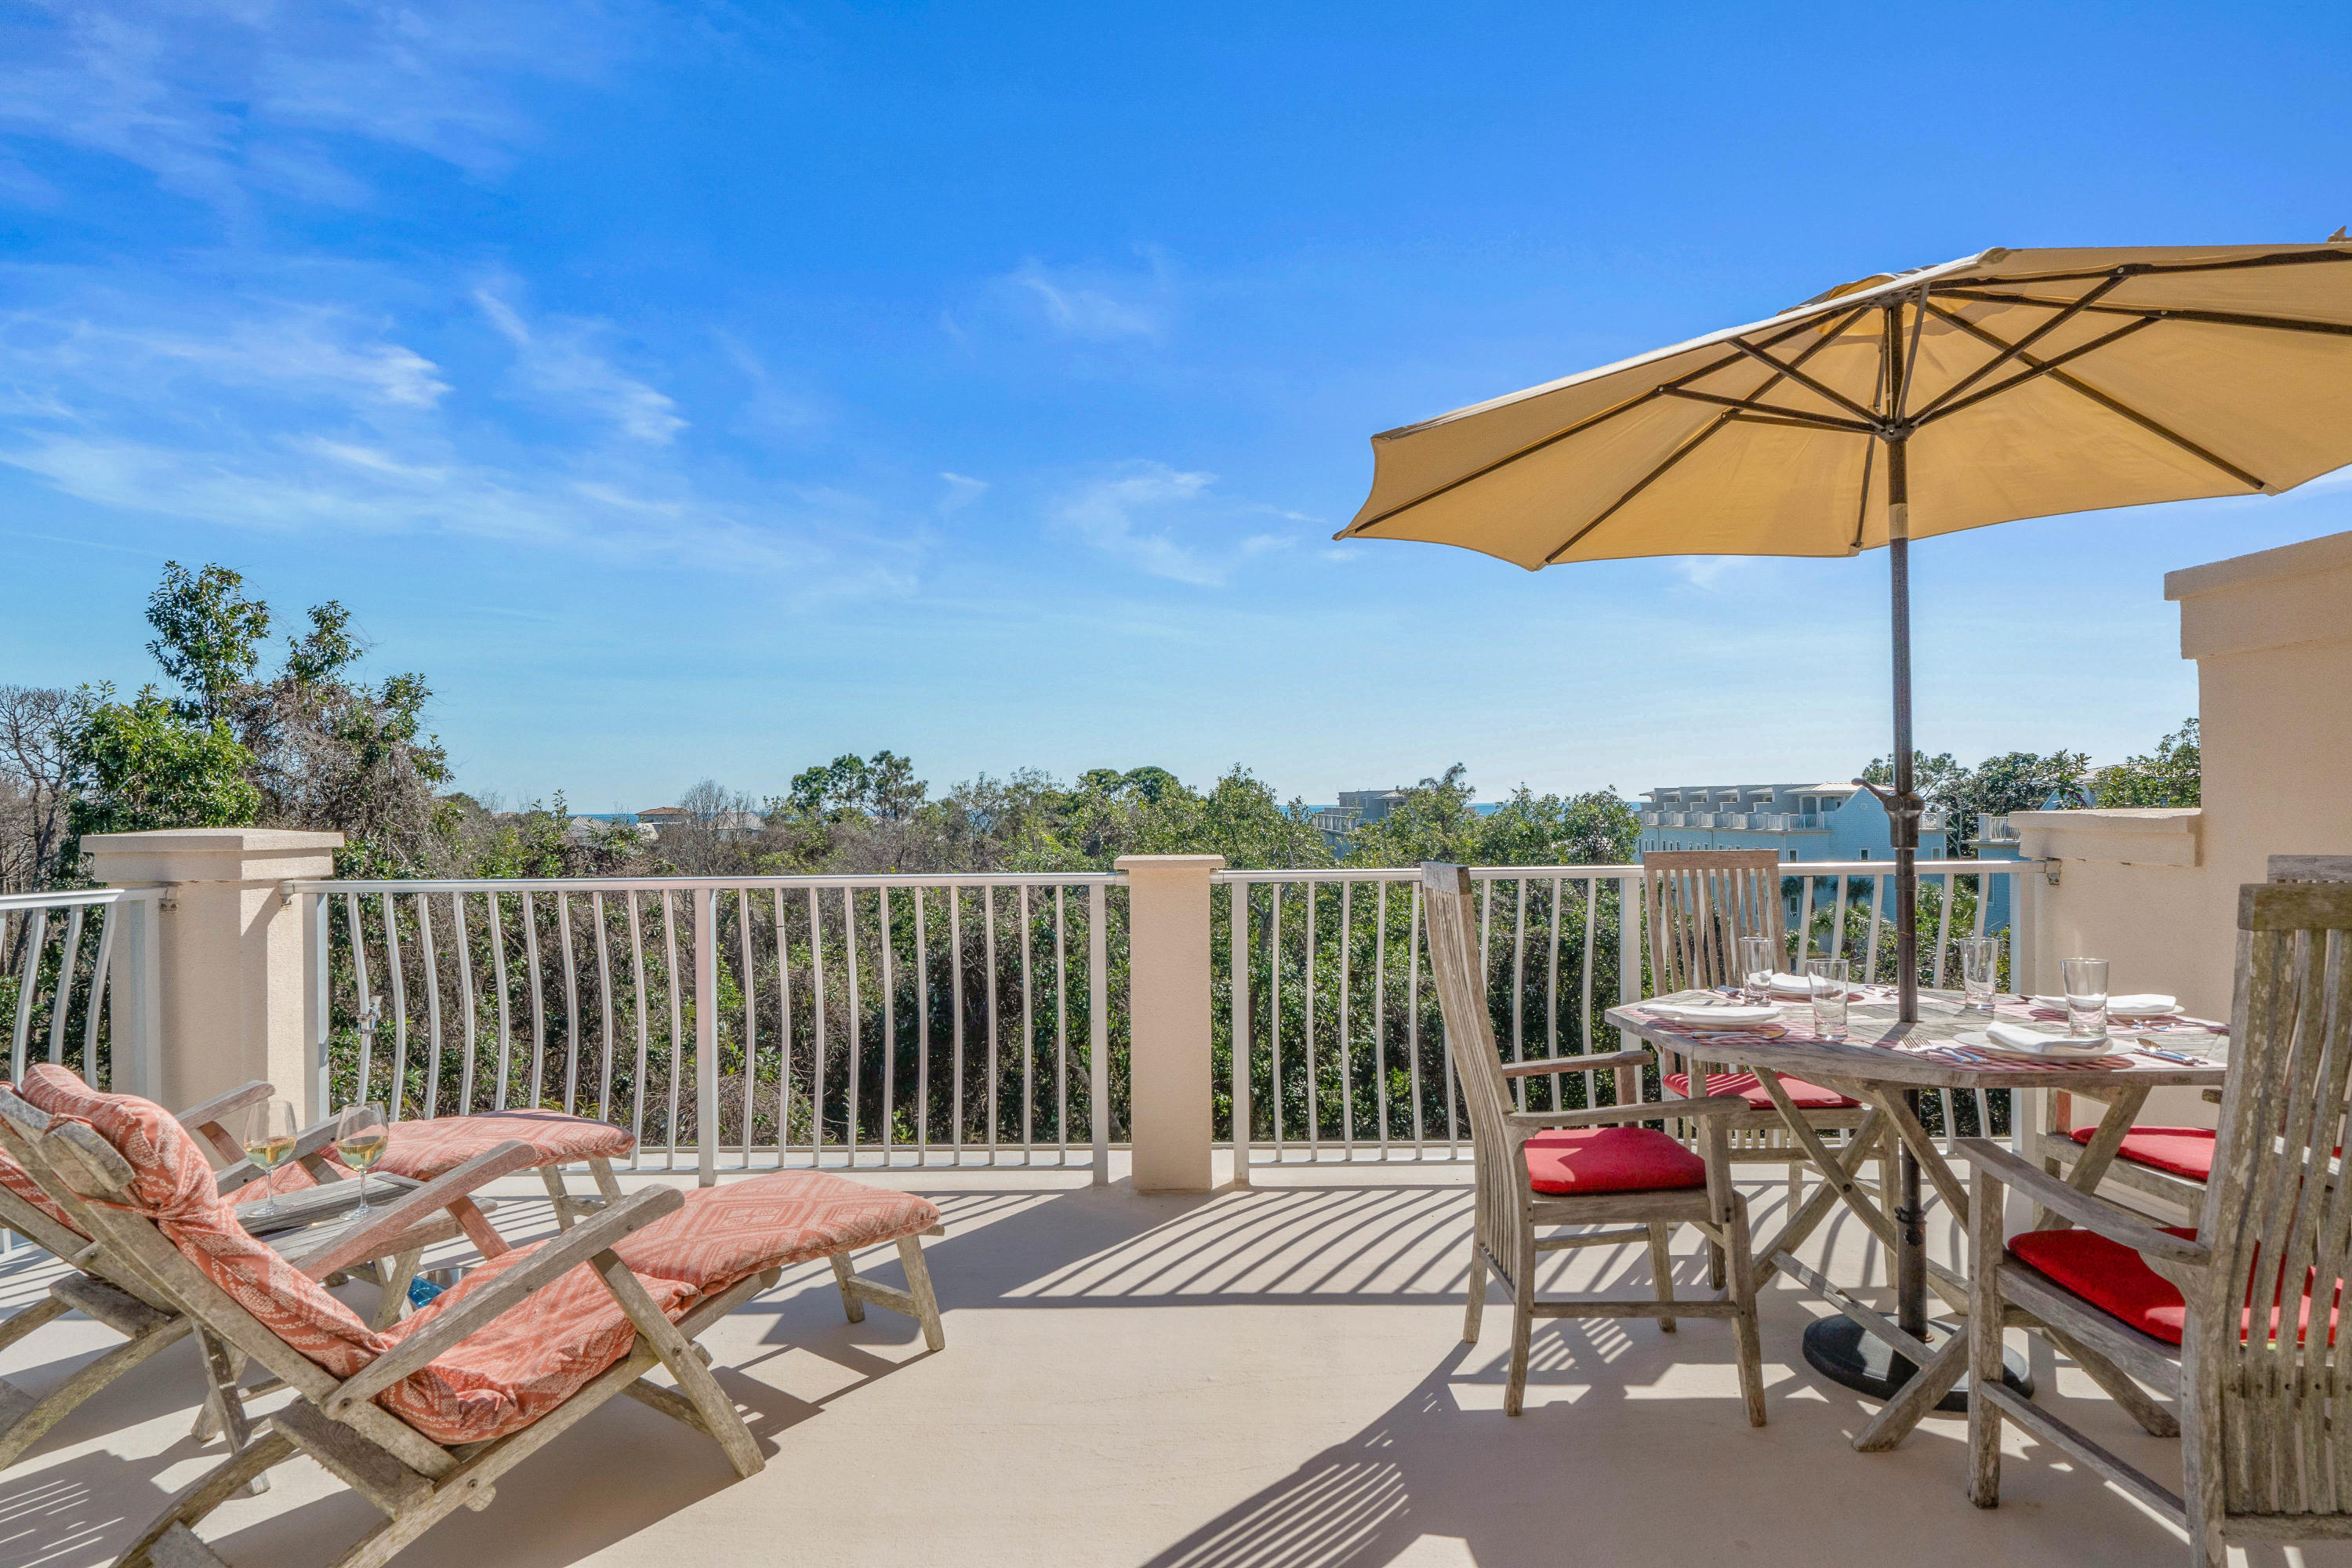 Pride in ownership abounds in this 4 bedroom 4 bathroom, 2248 square foot townhome in the gated comm